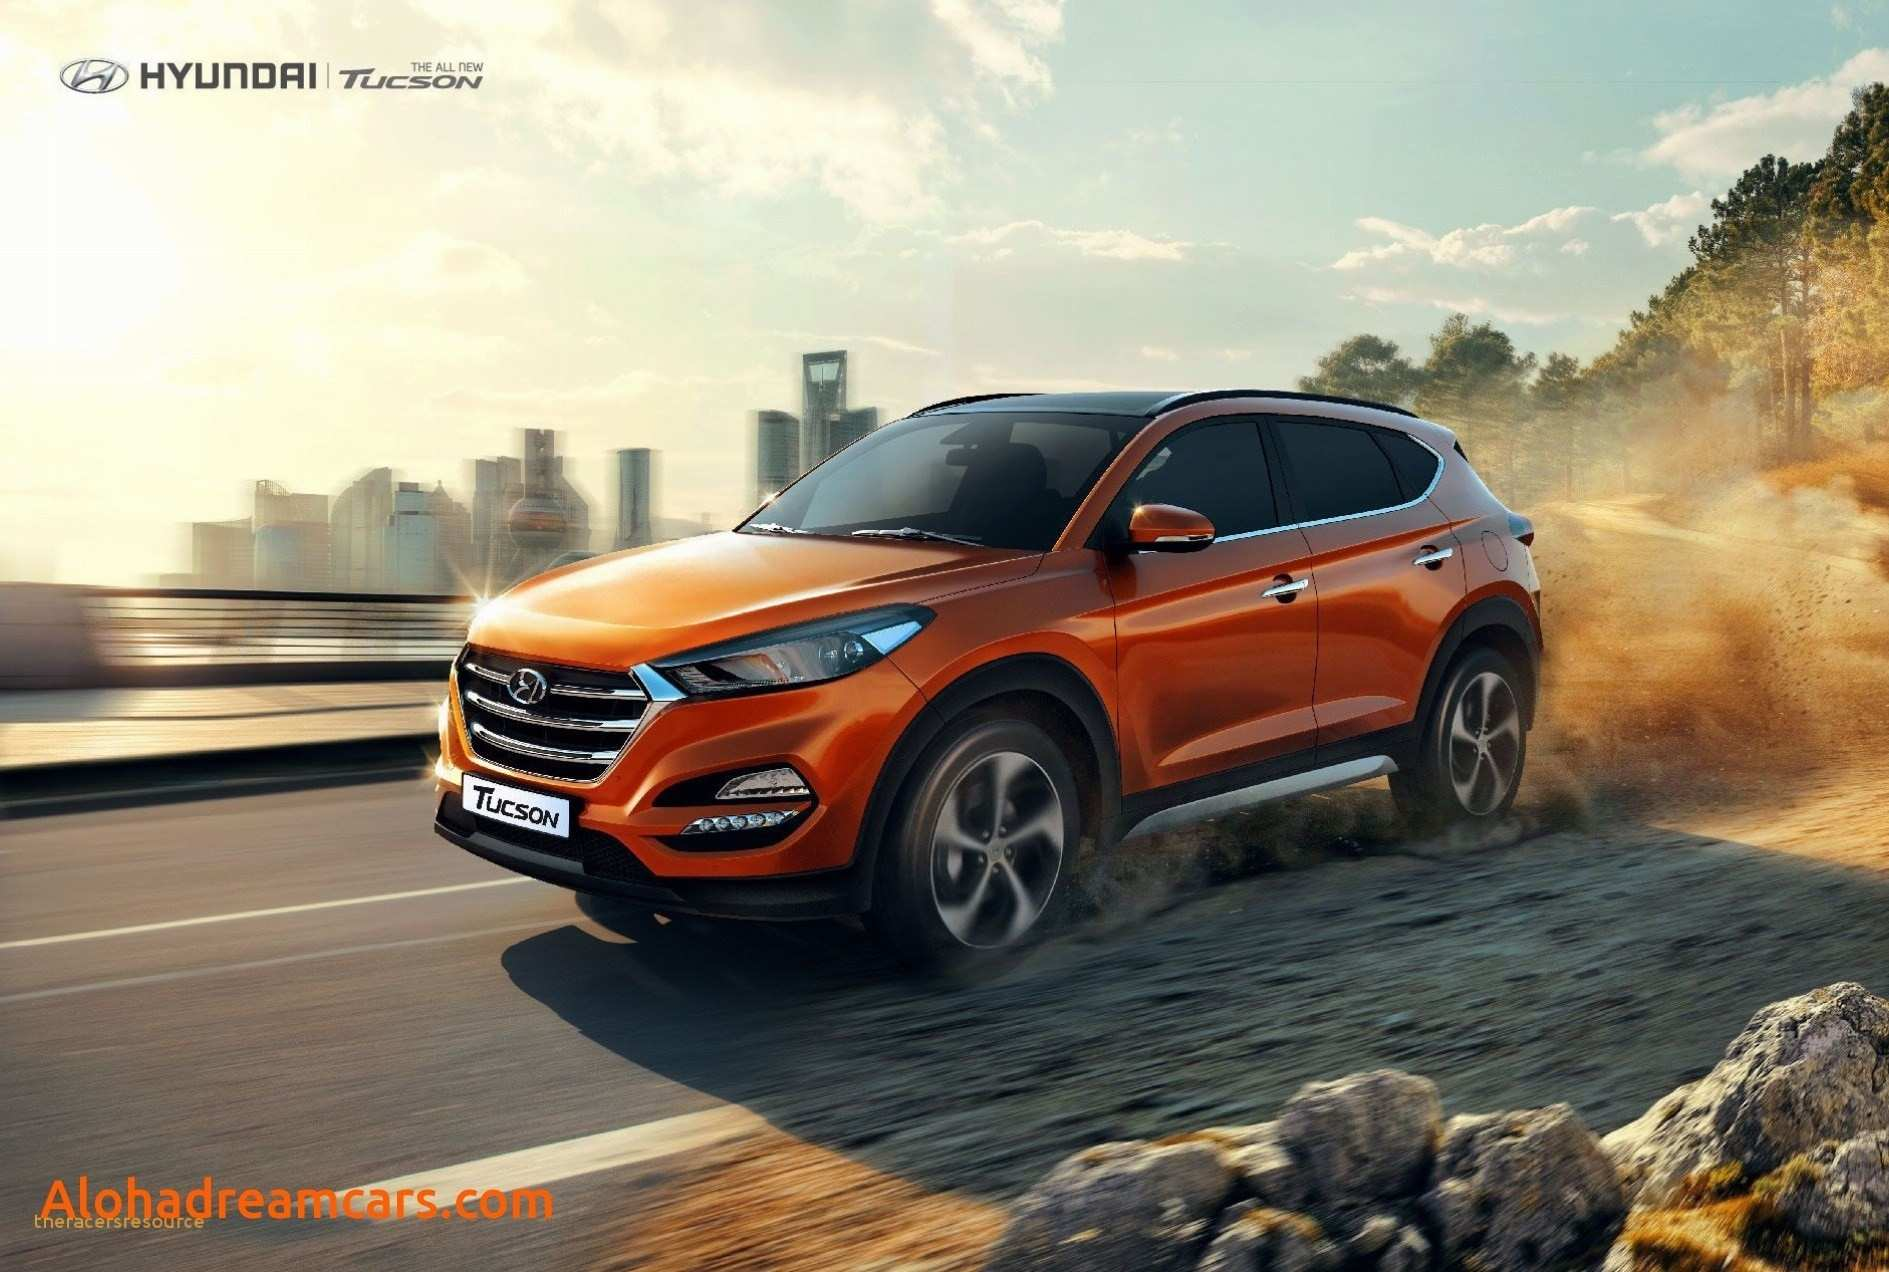 78 All New When Does The 2020 Hyundai Tucson Come Out Redesign with When Does The 2020 Hyundai Tucson Come Out